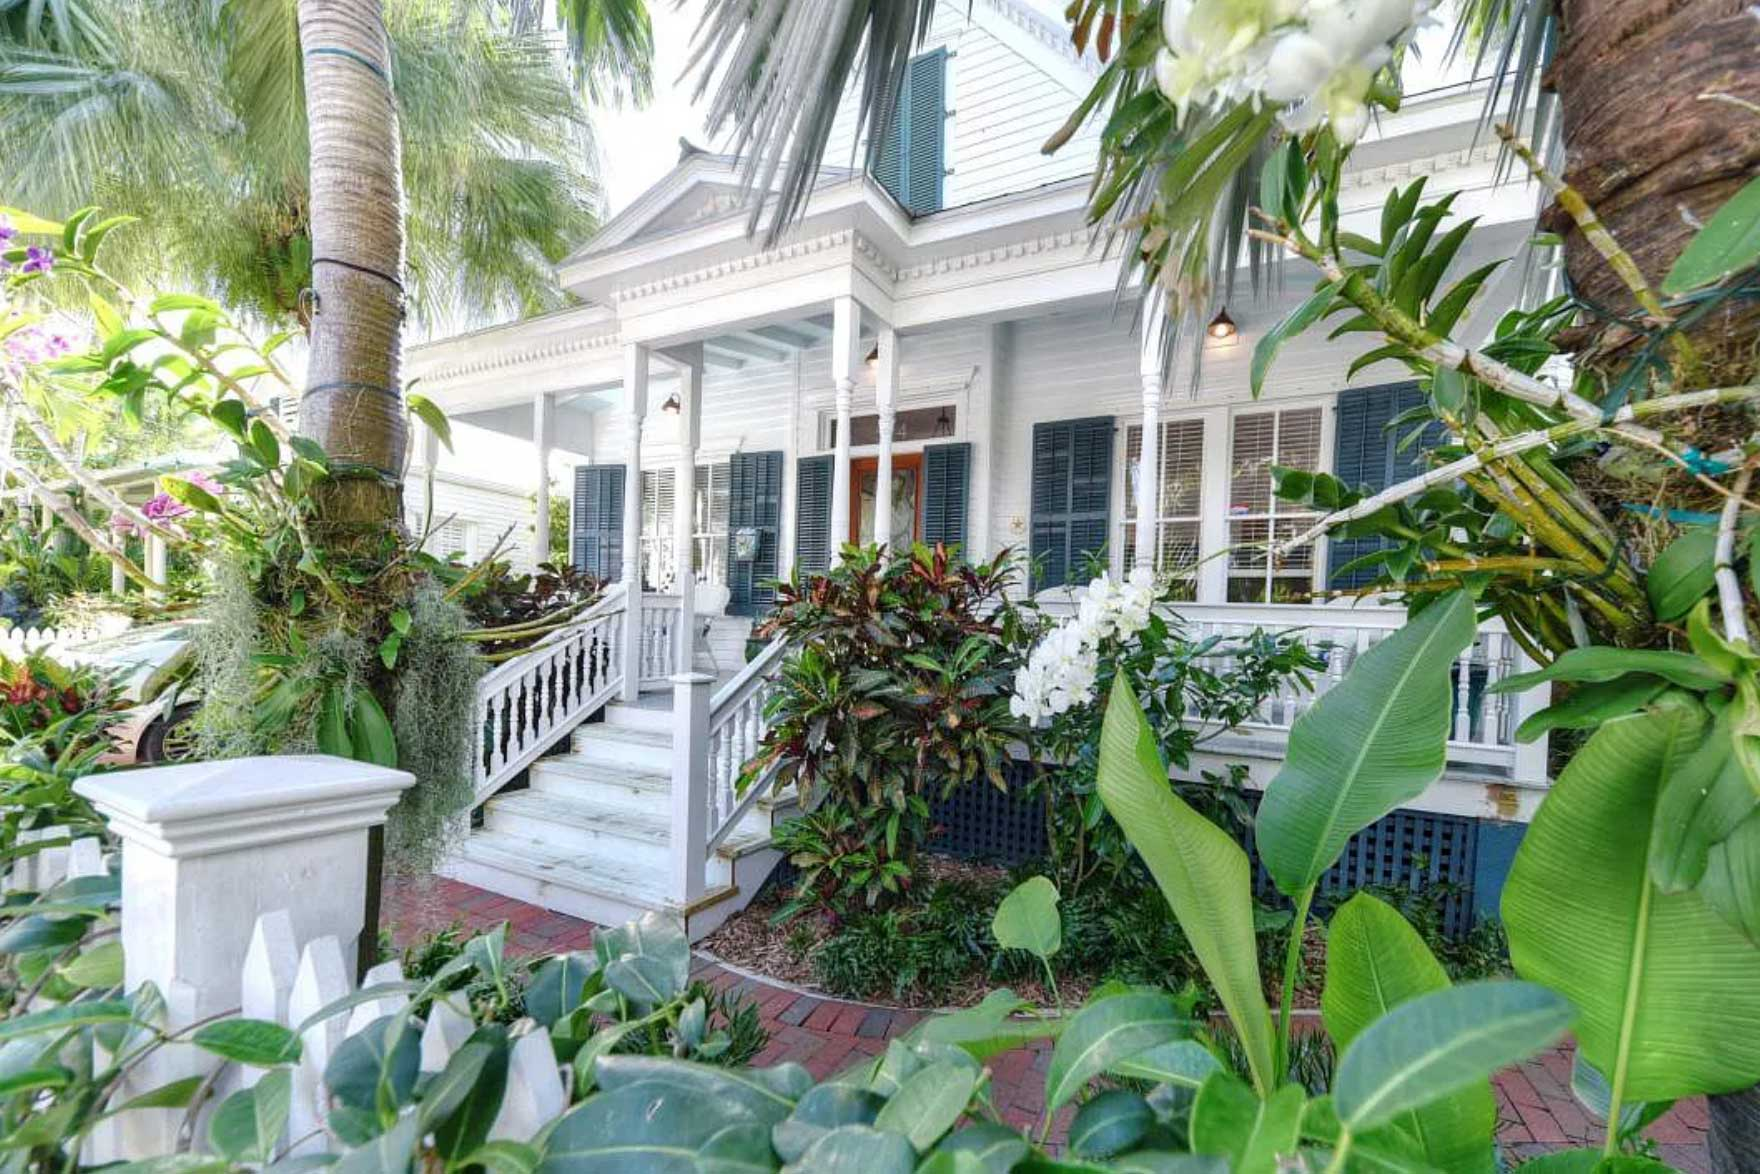 historic homes in the Florida Keys